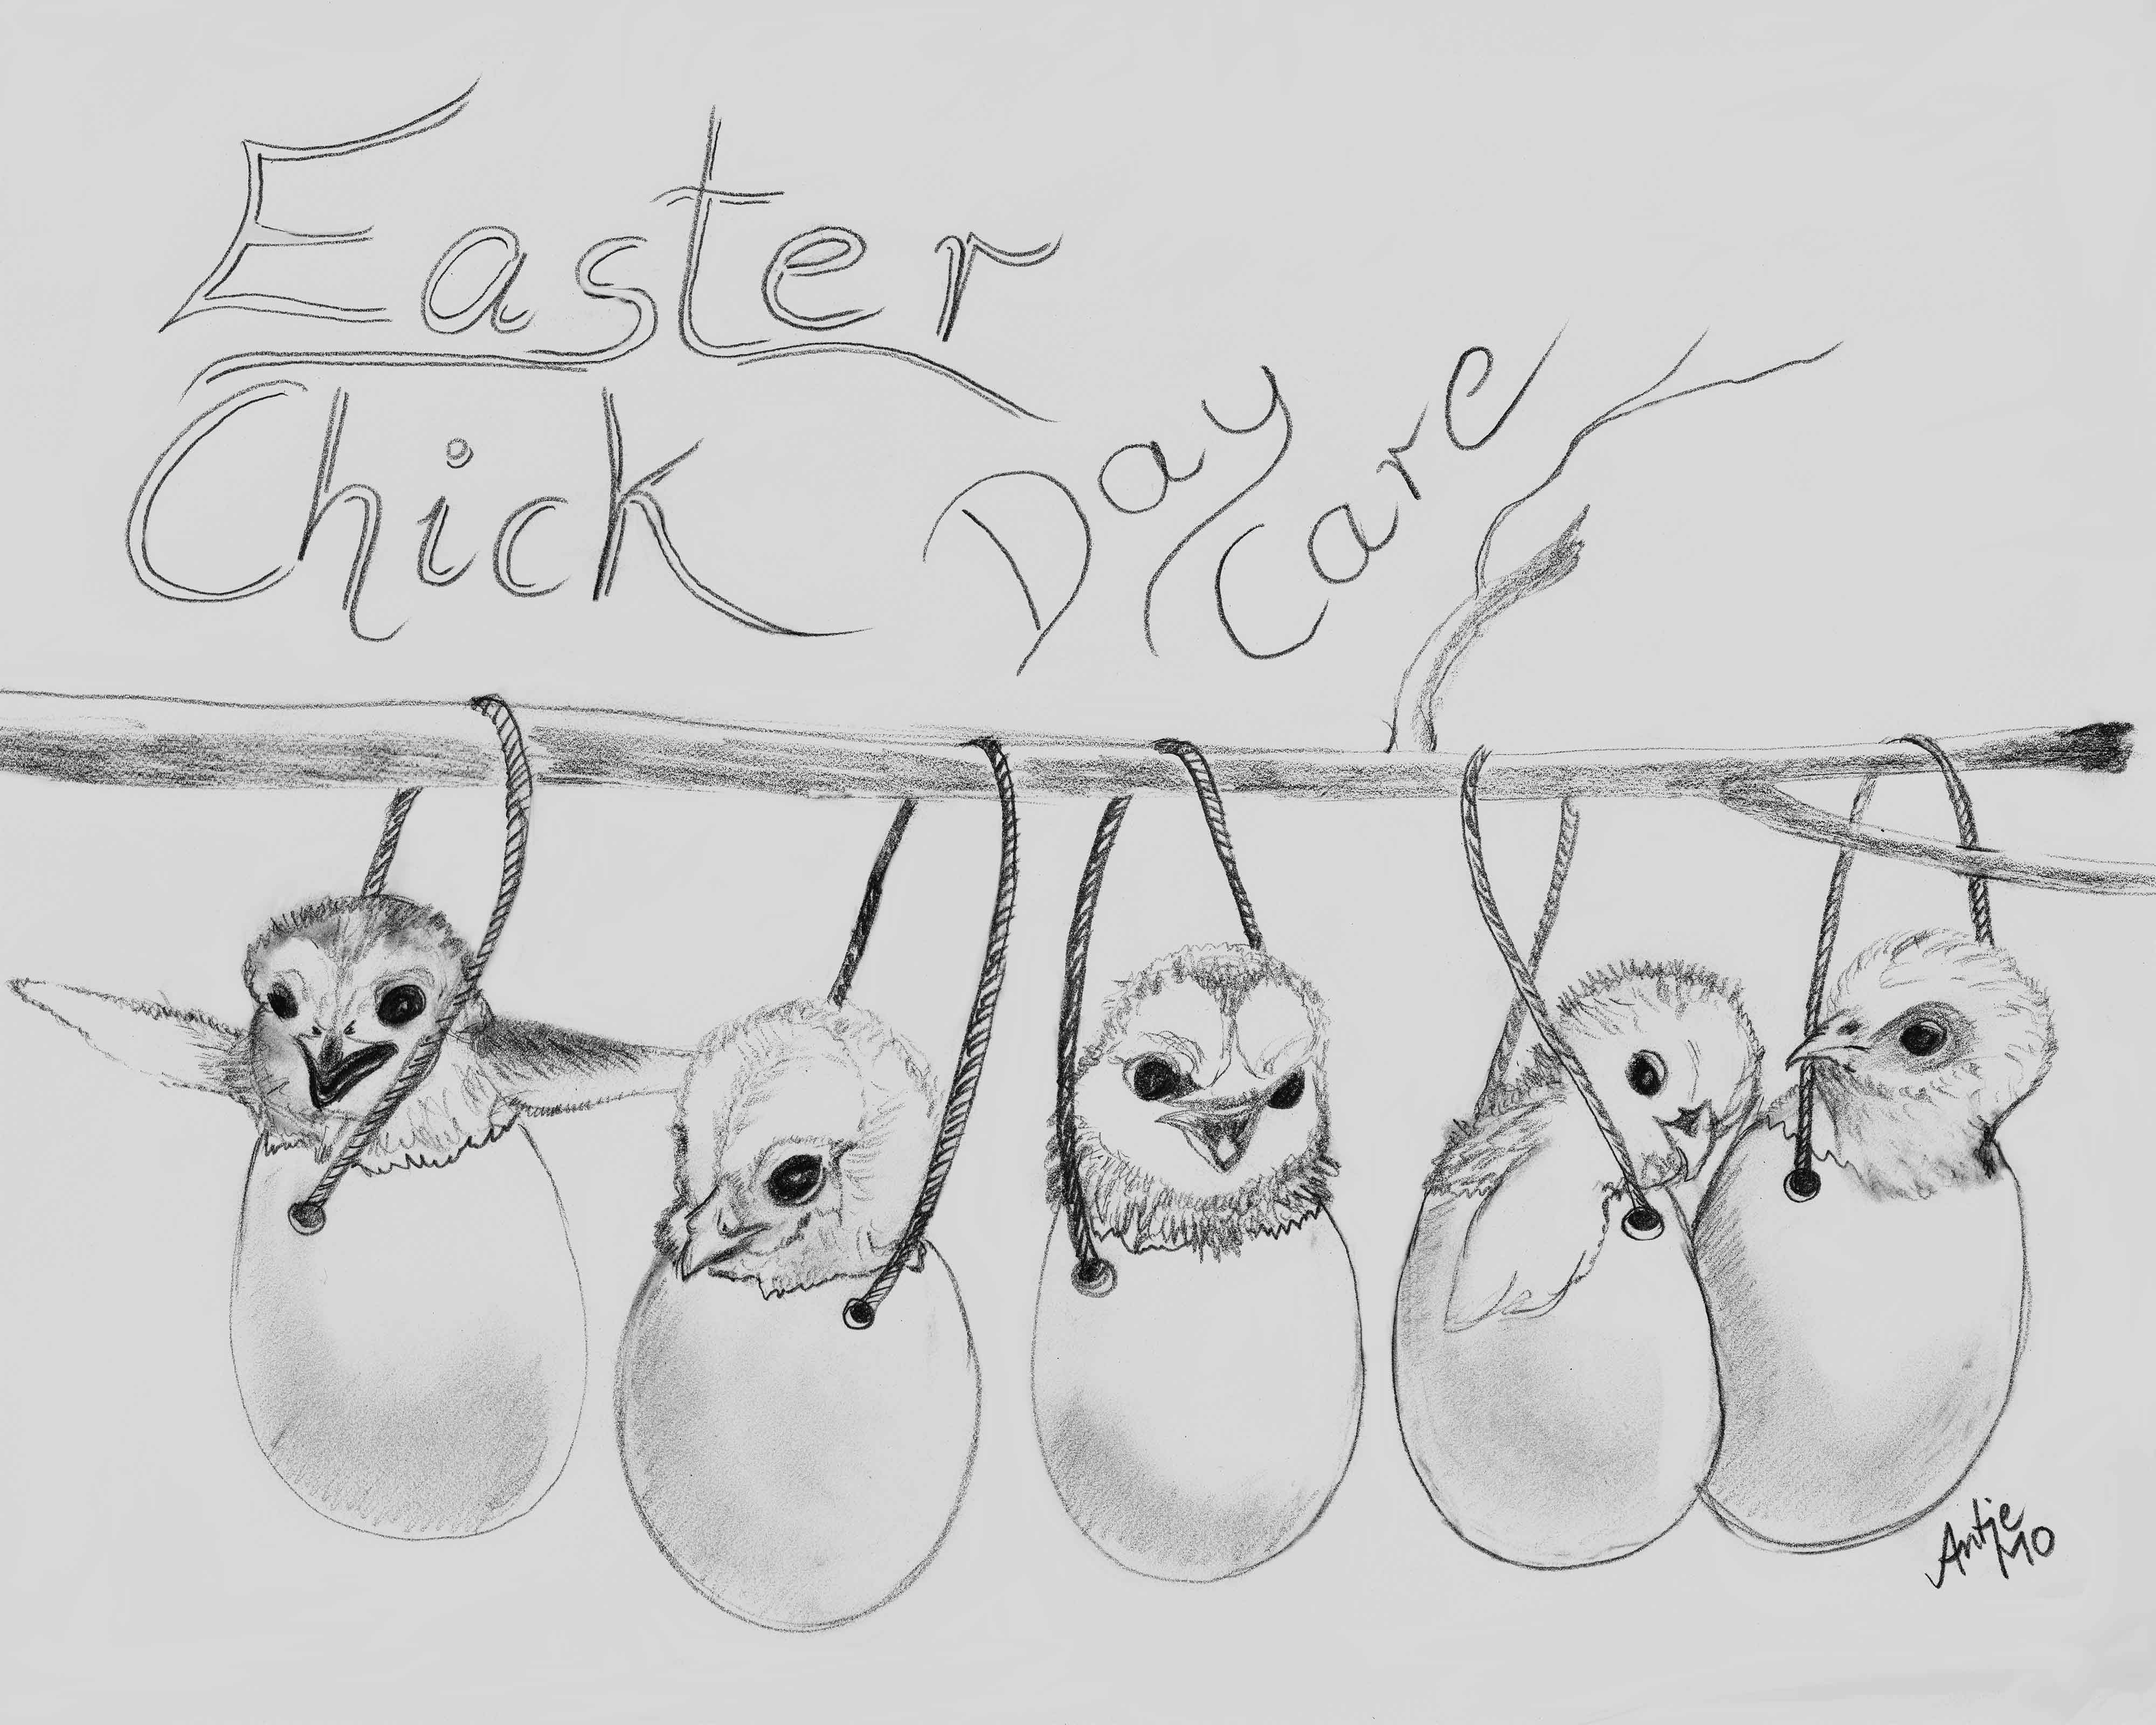 easter-chick-day-care